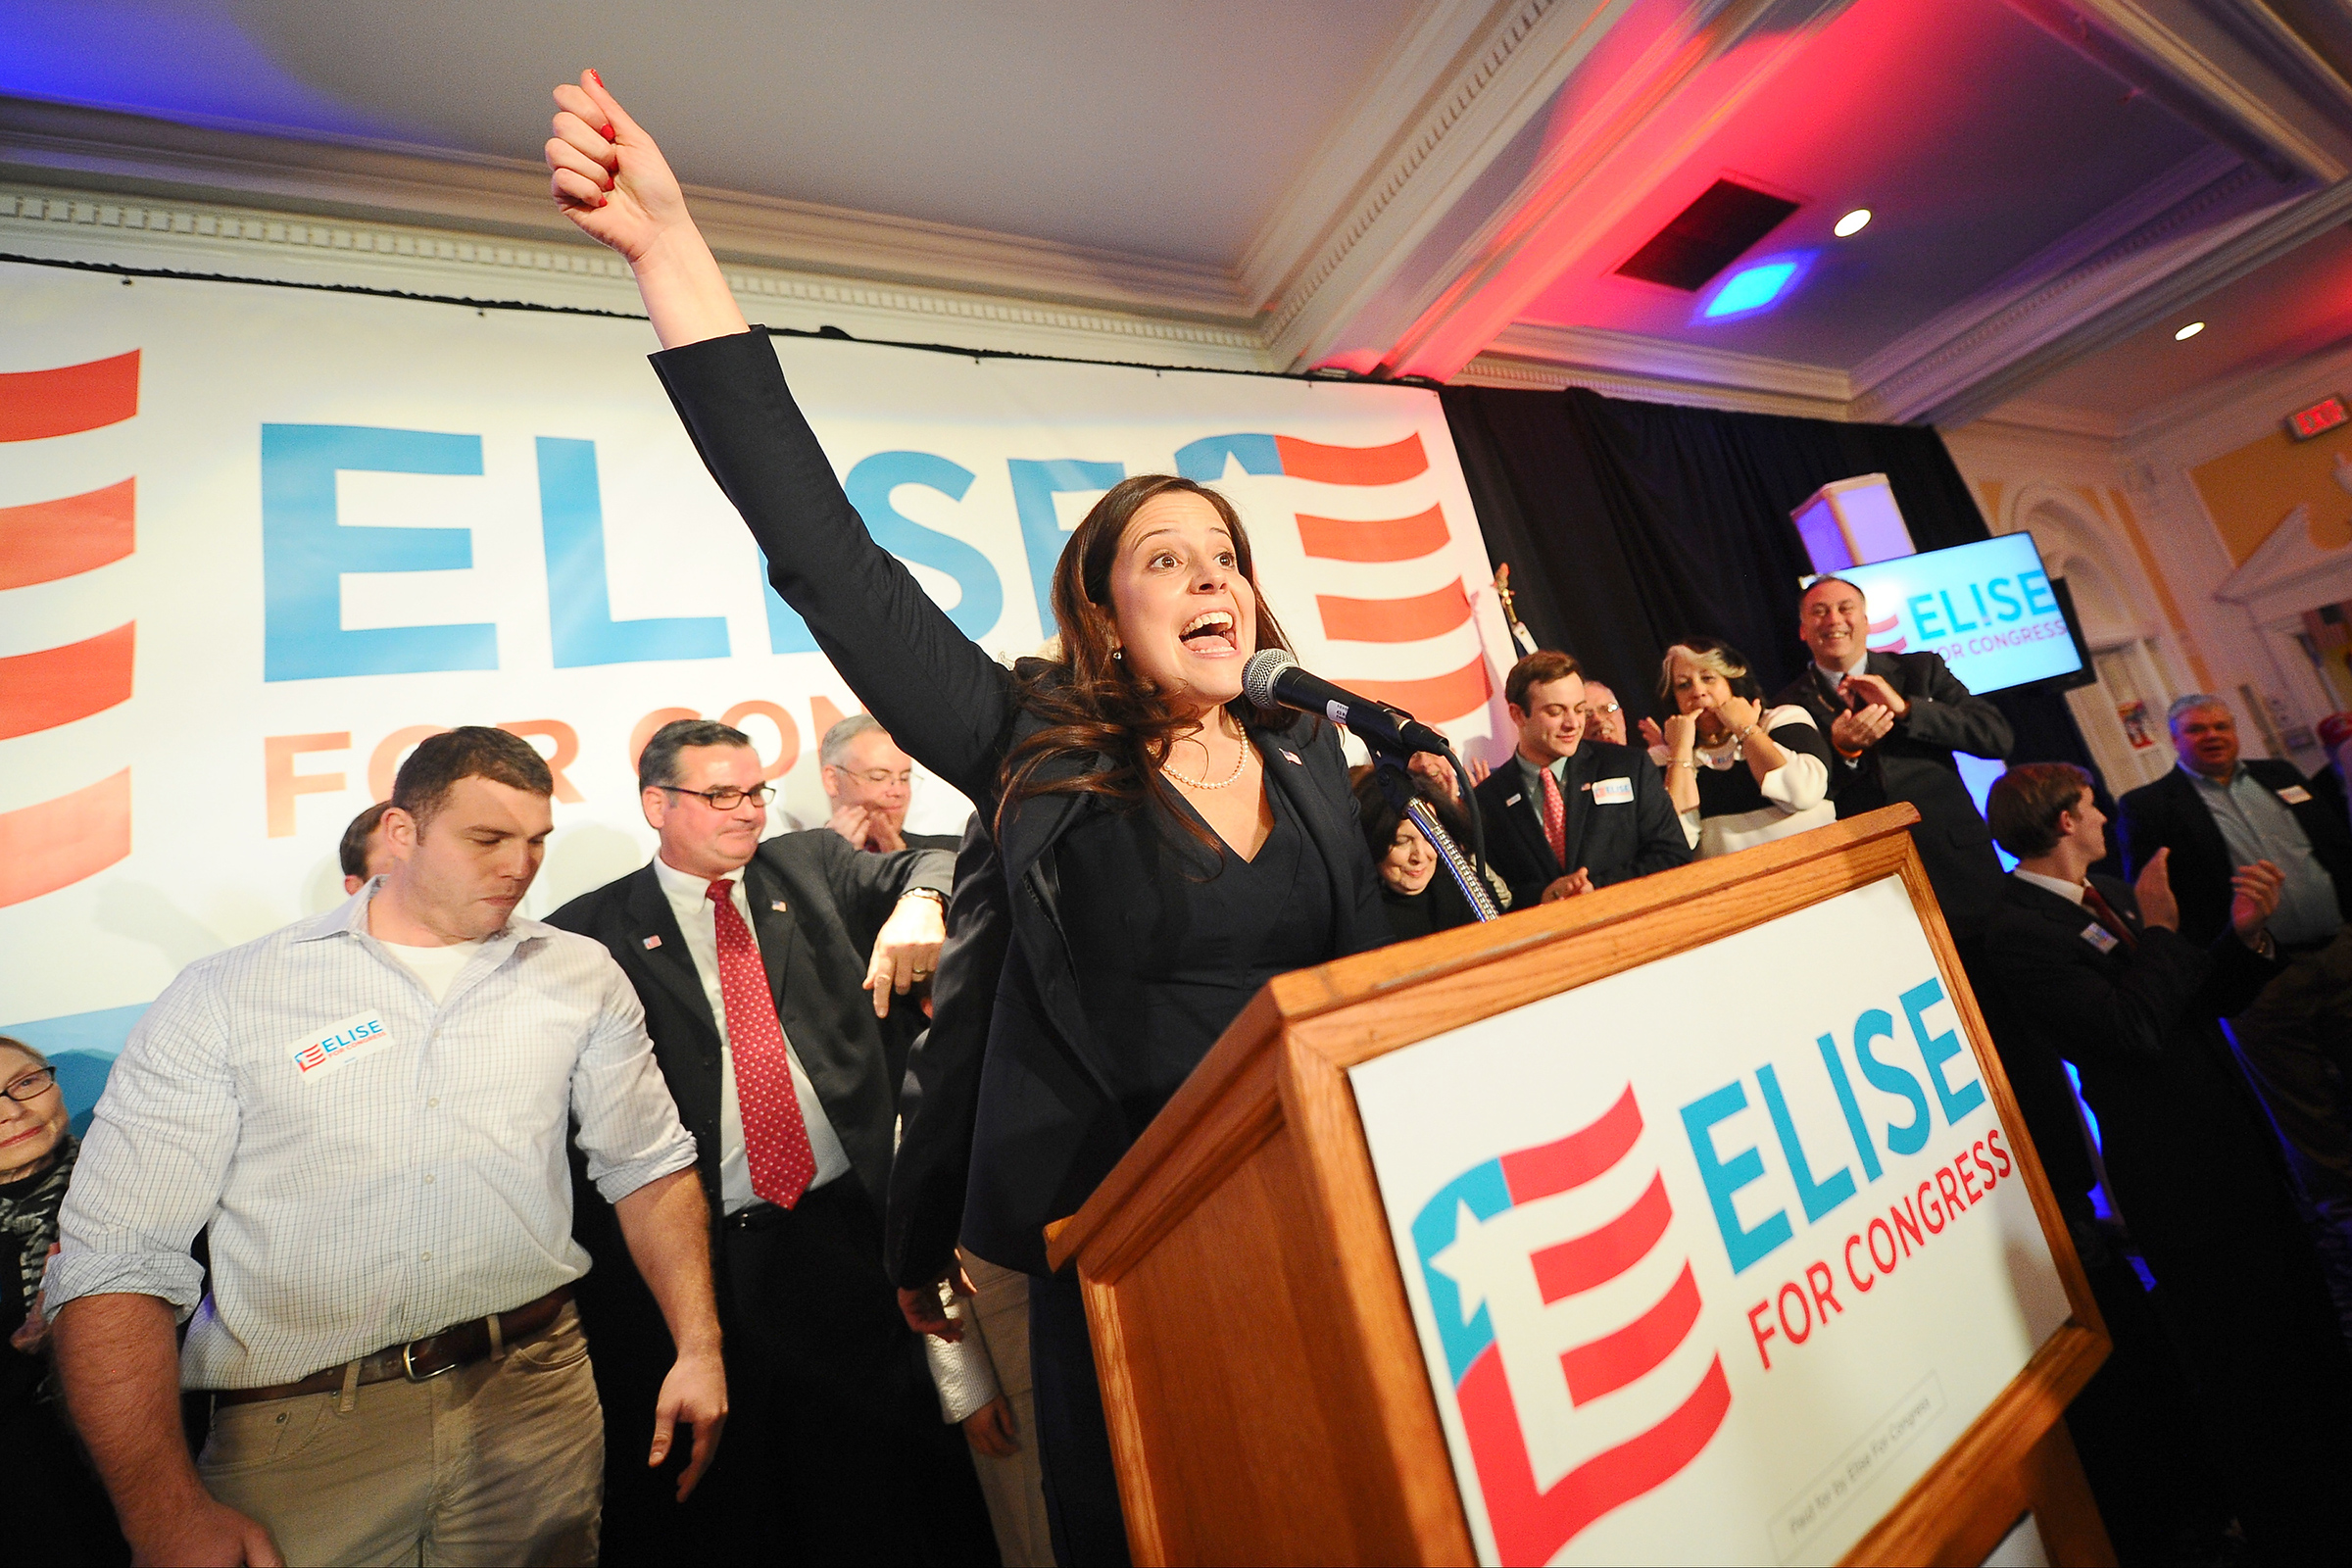 The 'Handmaiden of Trump': How Elise Stefanik Went From Moderate to MAGA